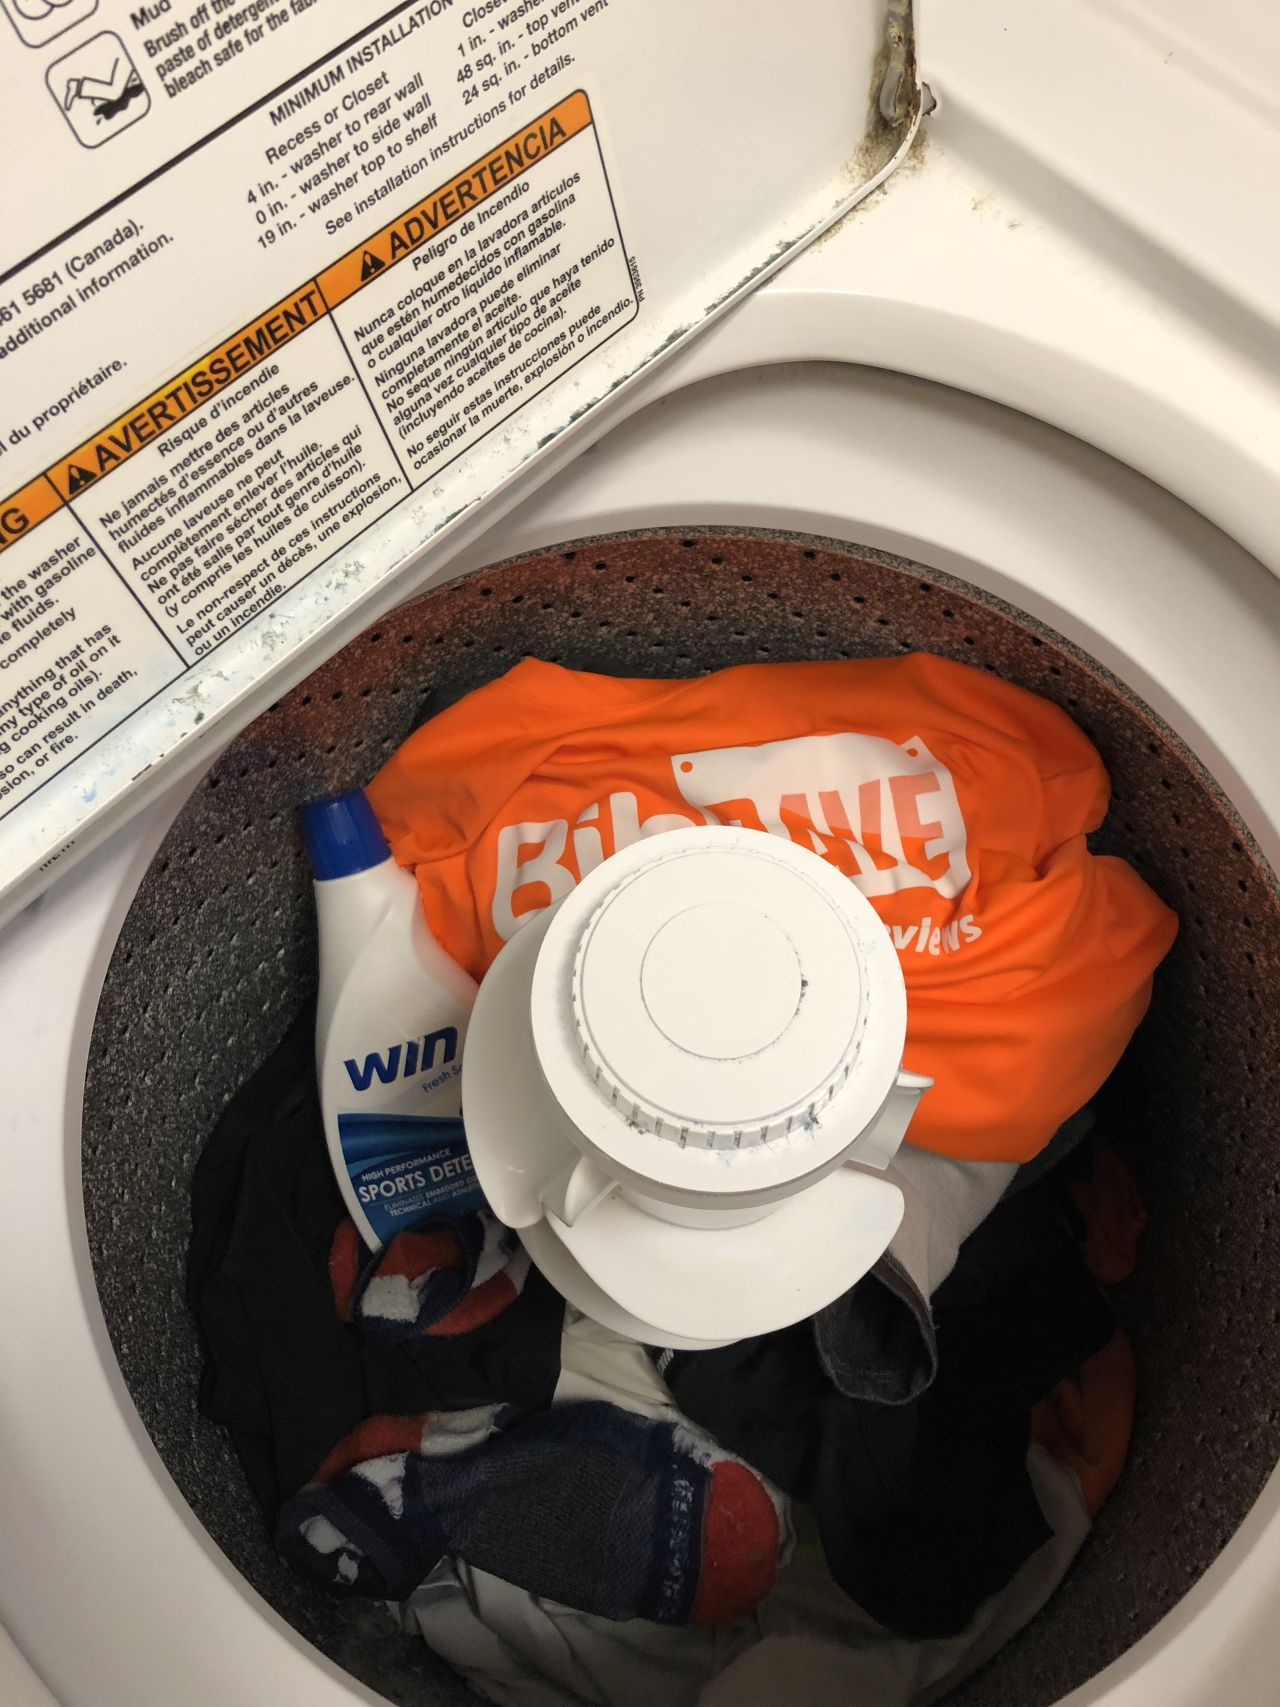 Turning Laundry Into a Win, with Win Detergent! Laundry